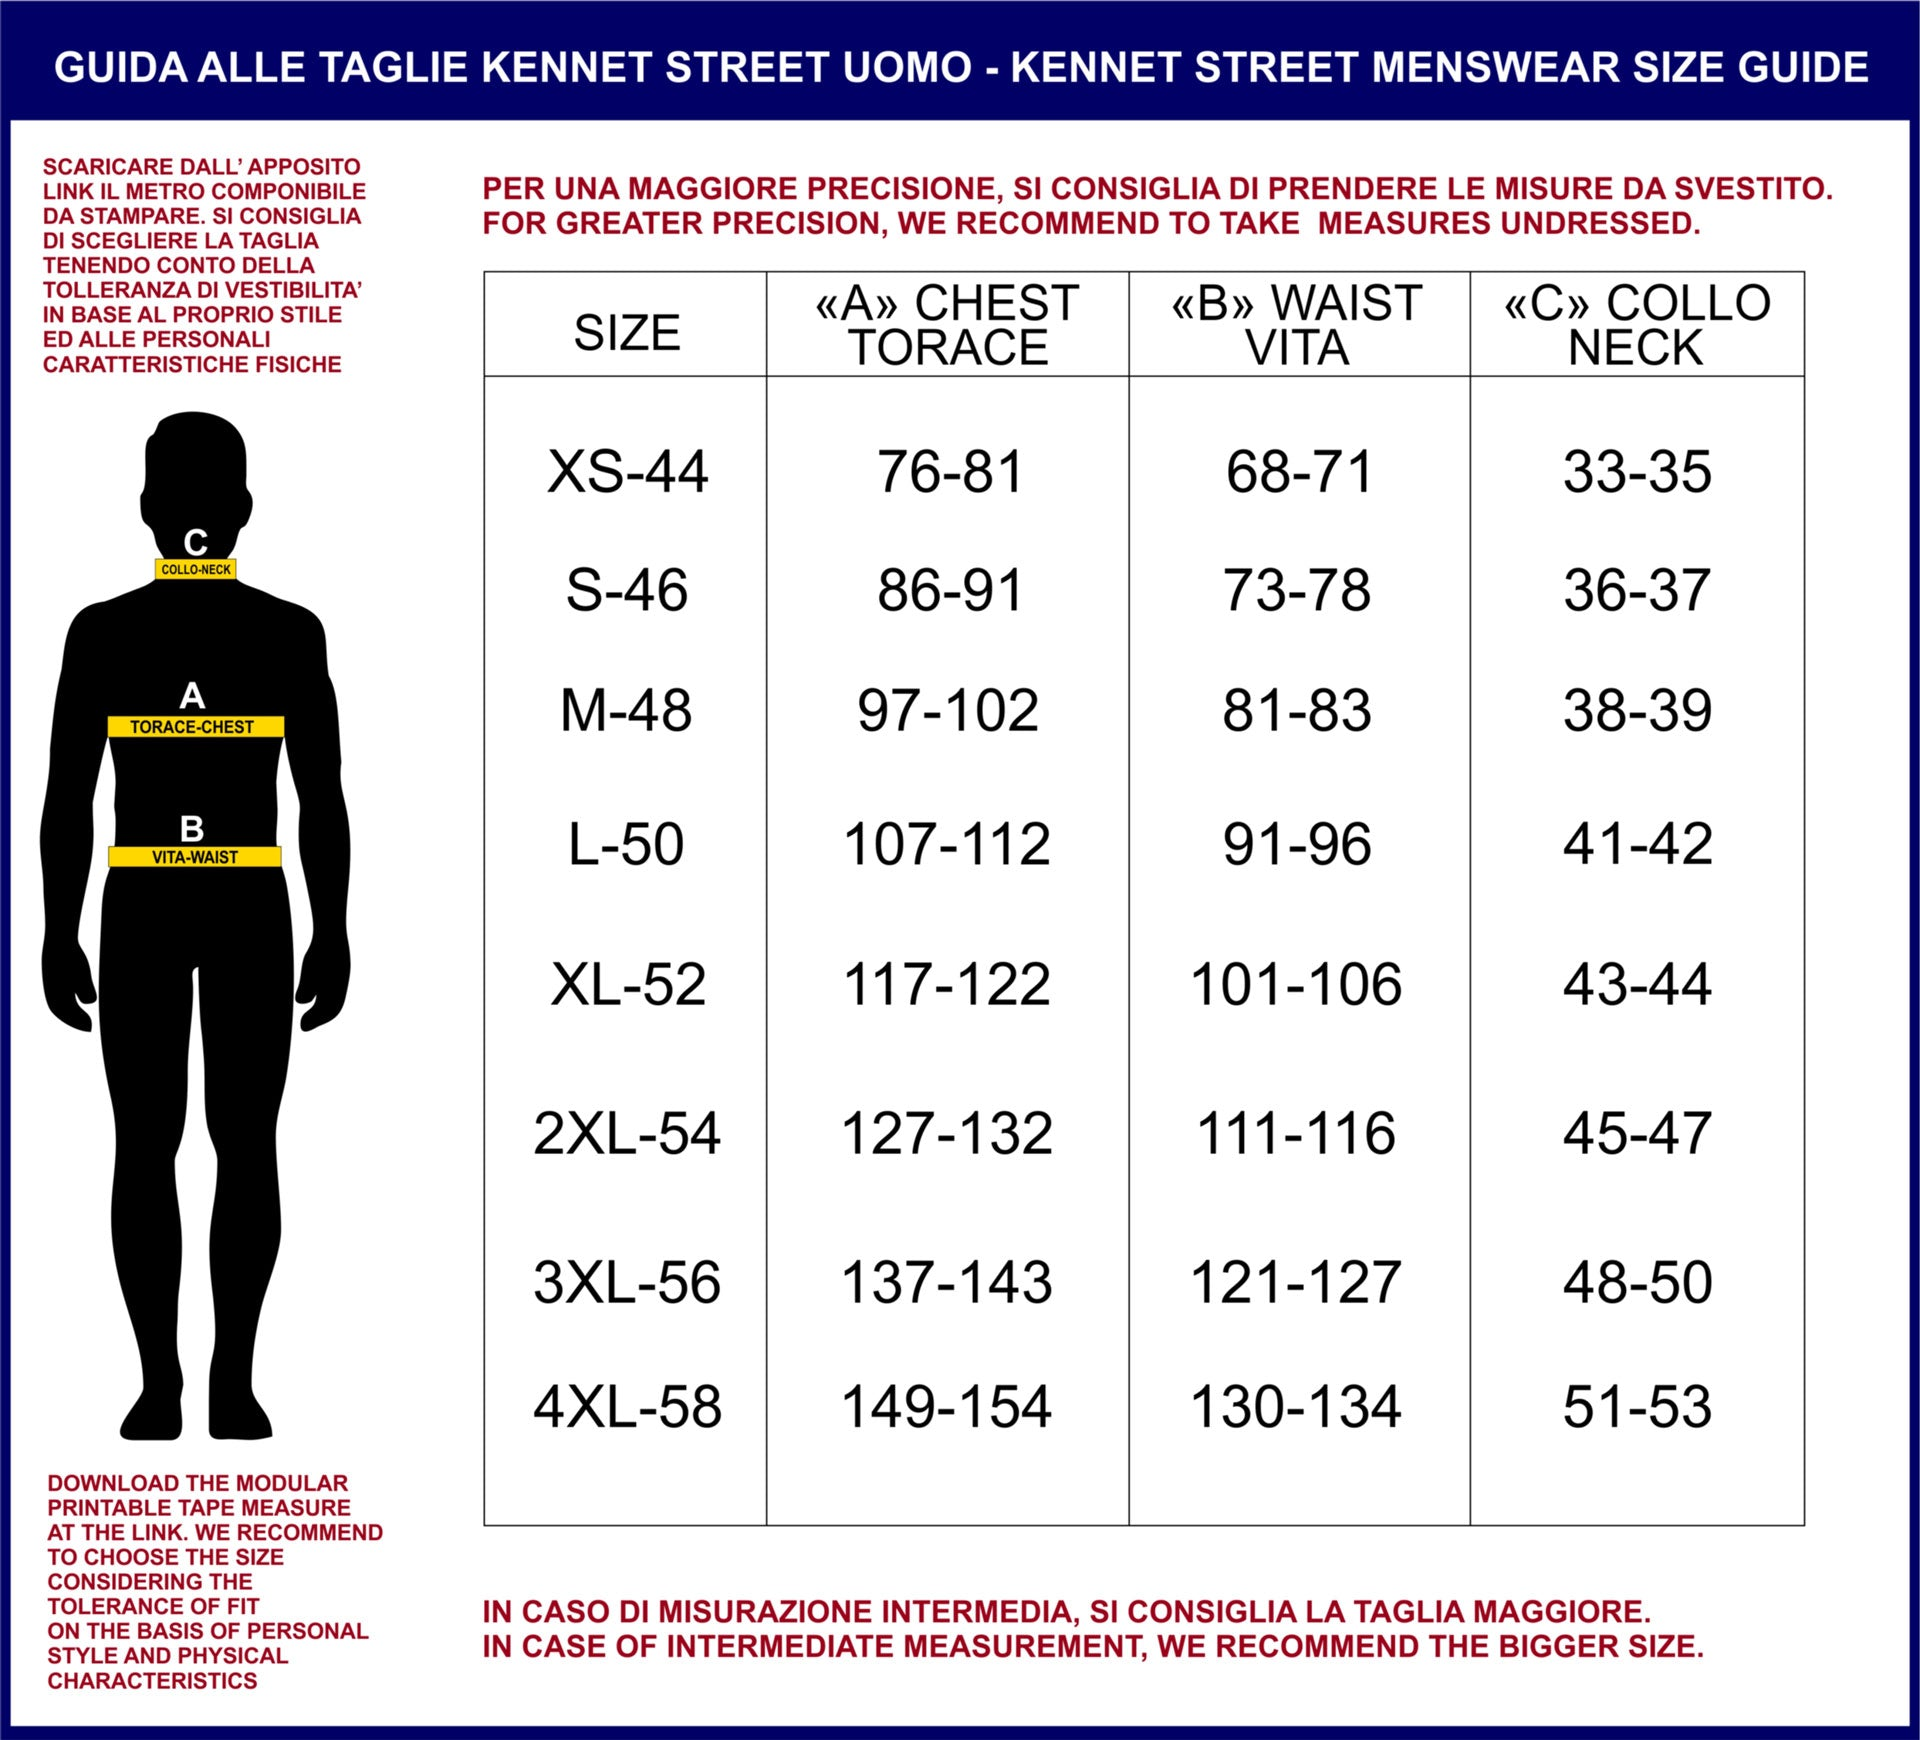 Kennet Street Men Size Guide